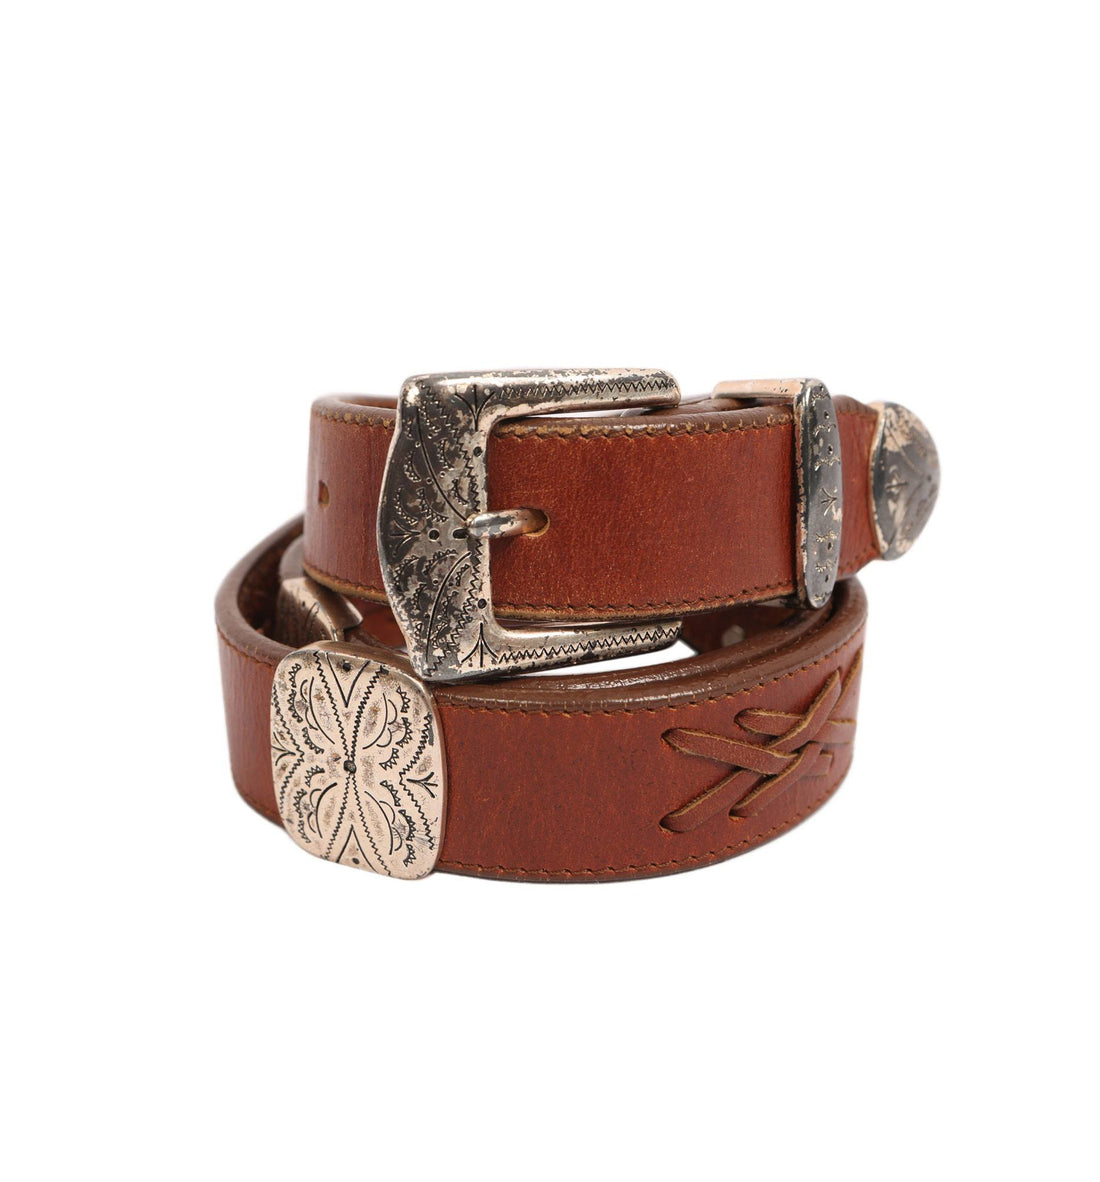 Vintage Leather Belt w/ Metal Embelishment - Vintage: Other - Iron and Resin